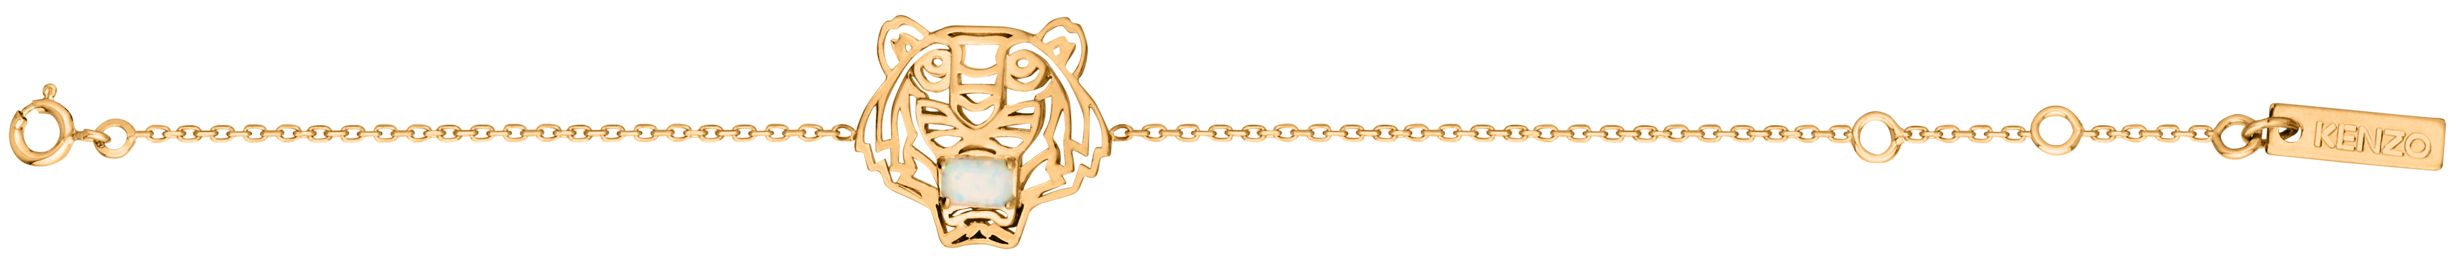 kenzo 263820108190 gold and opal bracelet